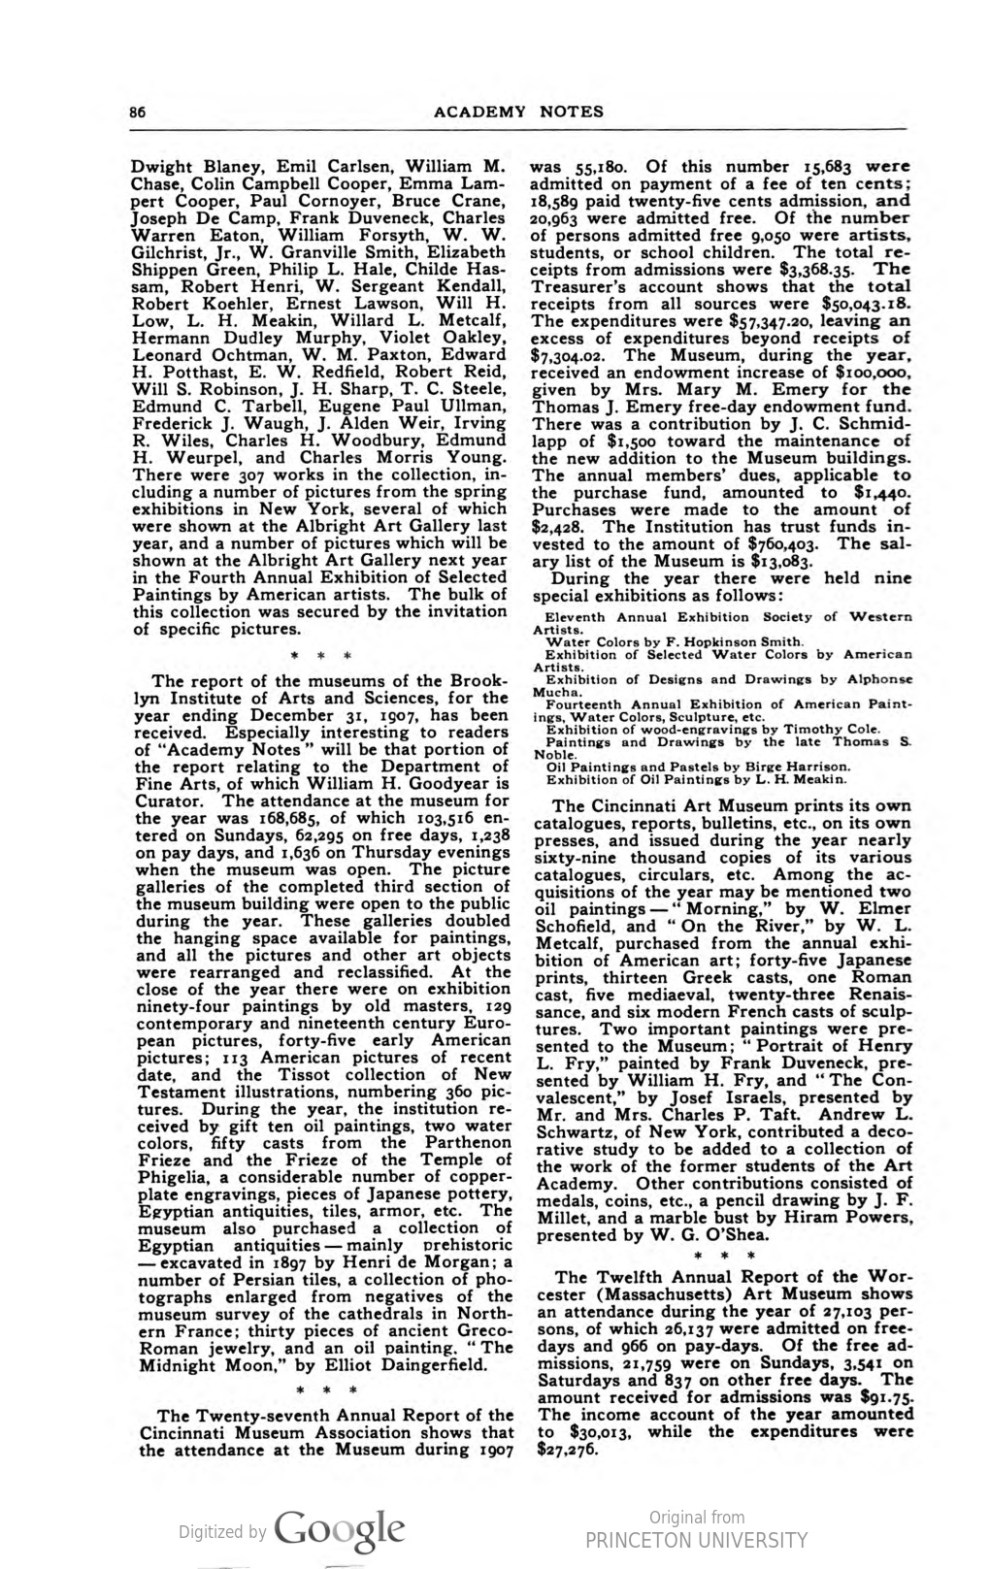 """Academy Notes, Buffalo Fine Arts Academy, Albright Art Gallery, Buffalo, NY, """"Art Museum Notes"""", November, 1908, Volume 4, Number 6, page 85-86, not illustrated"""